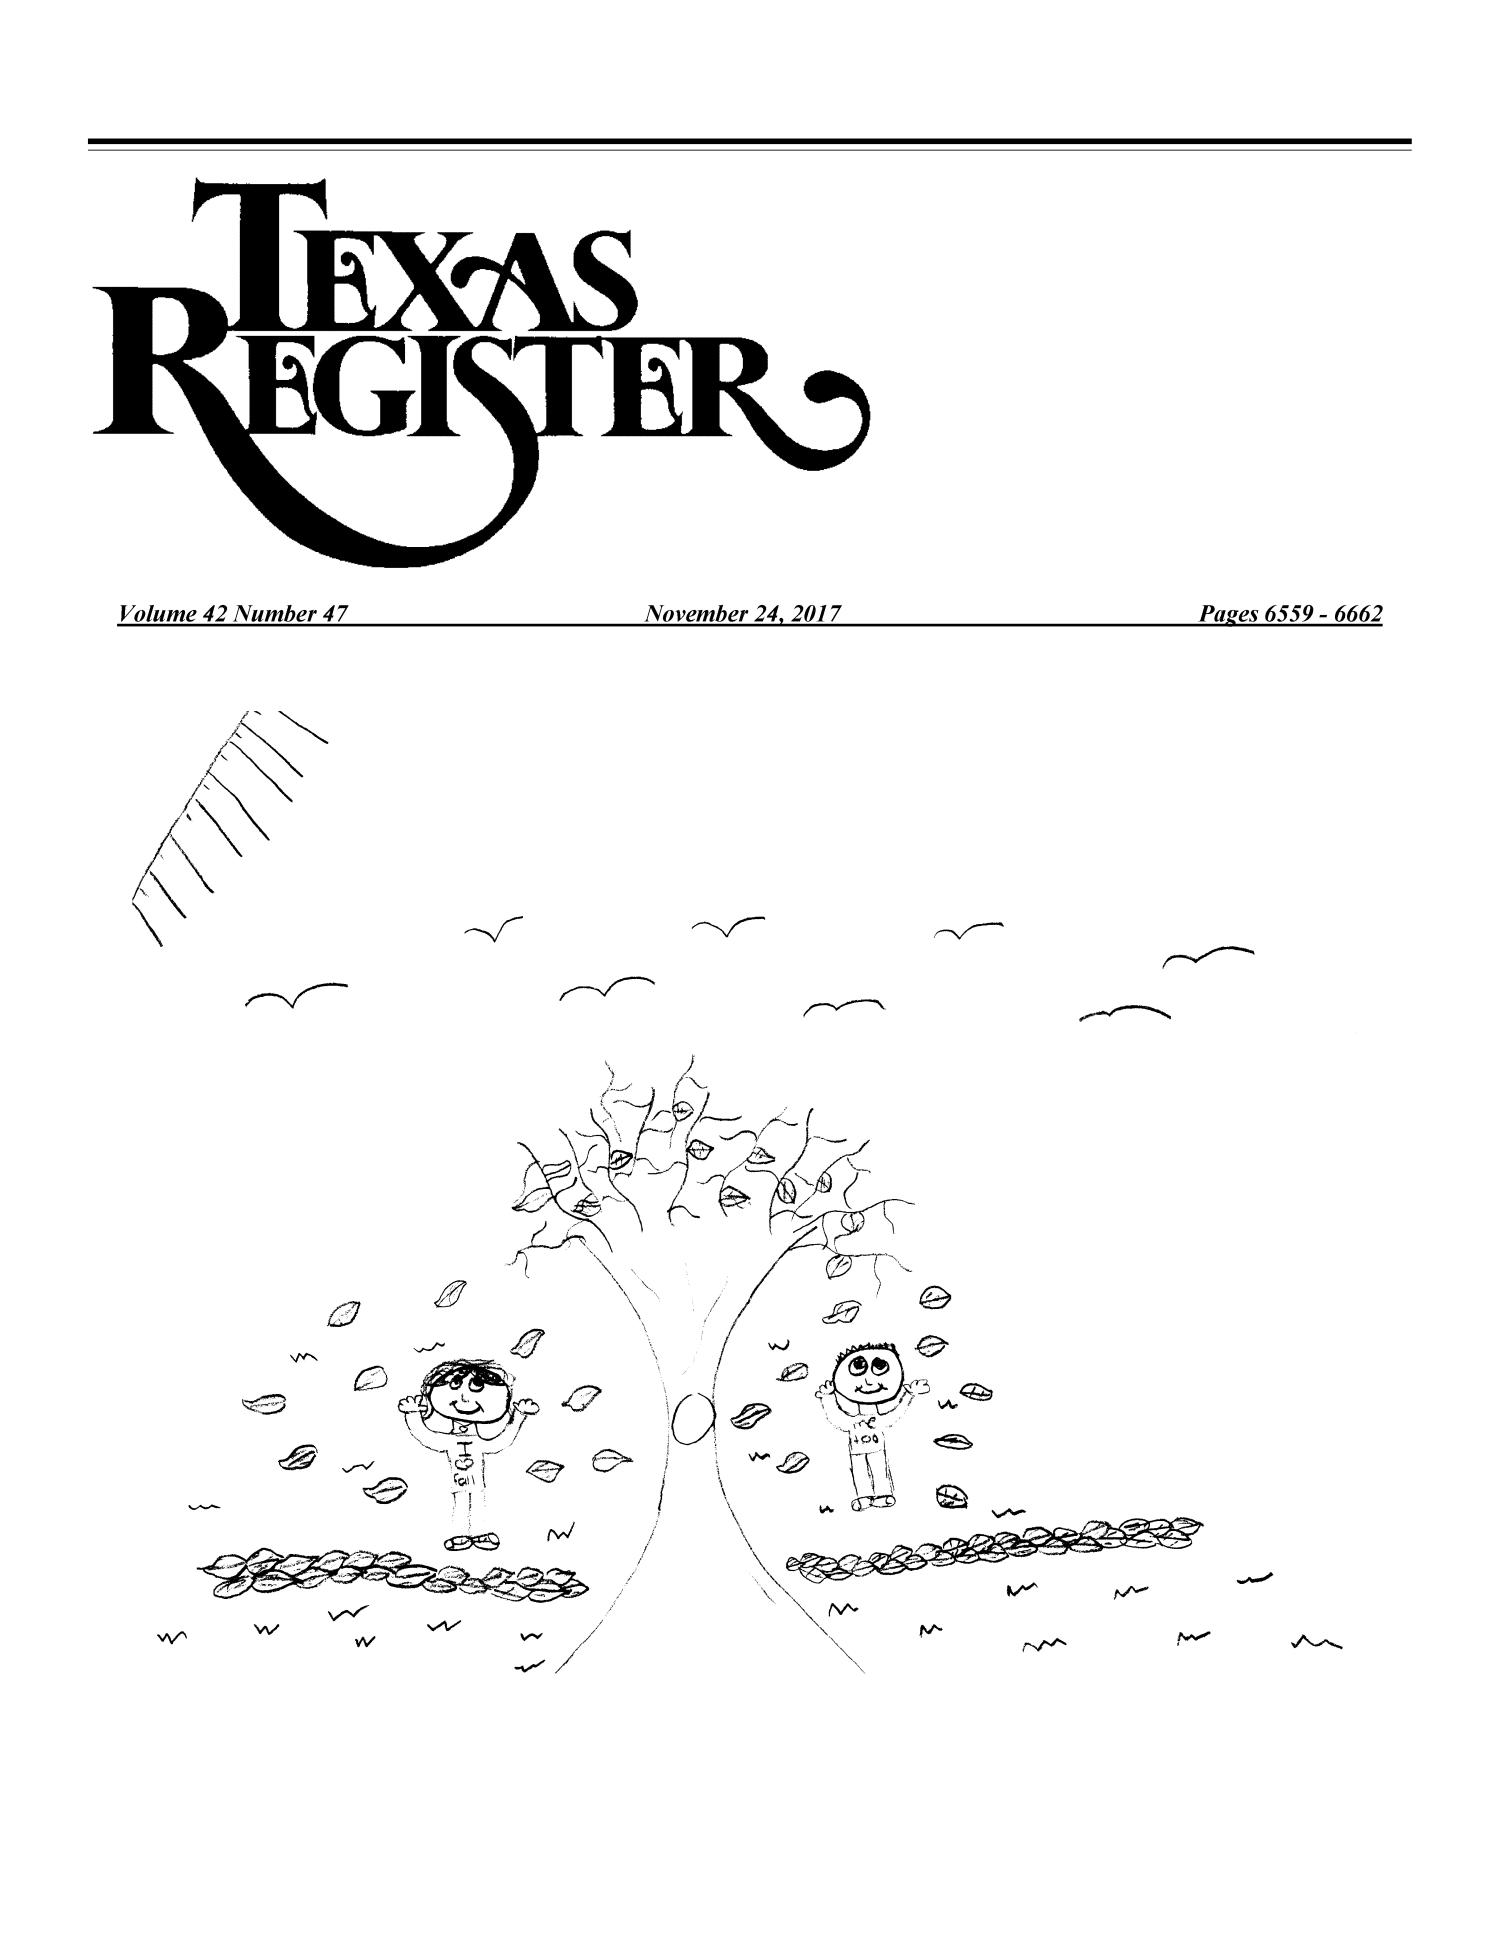 Texas Register, Volume 42, Number 47, Pages 6559-6662